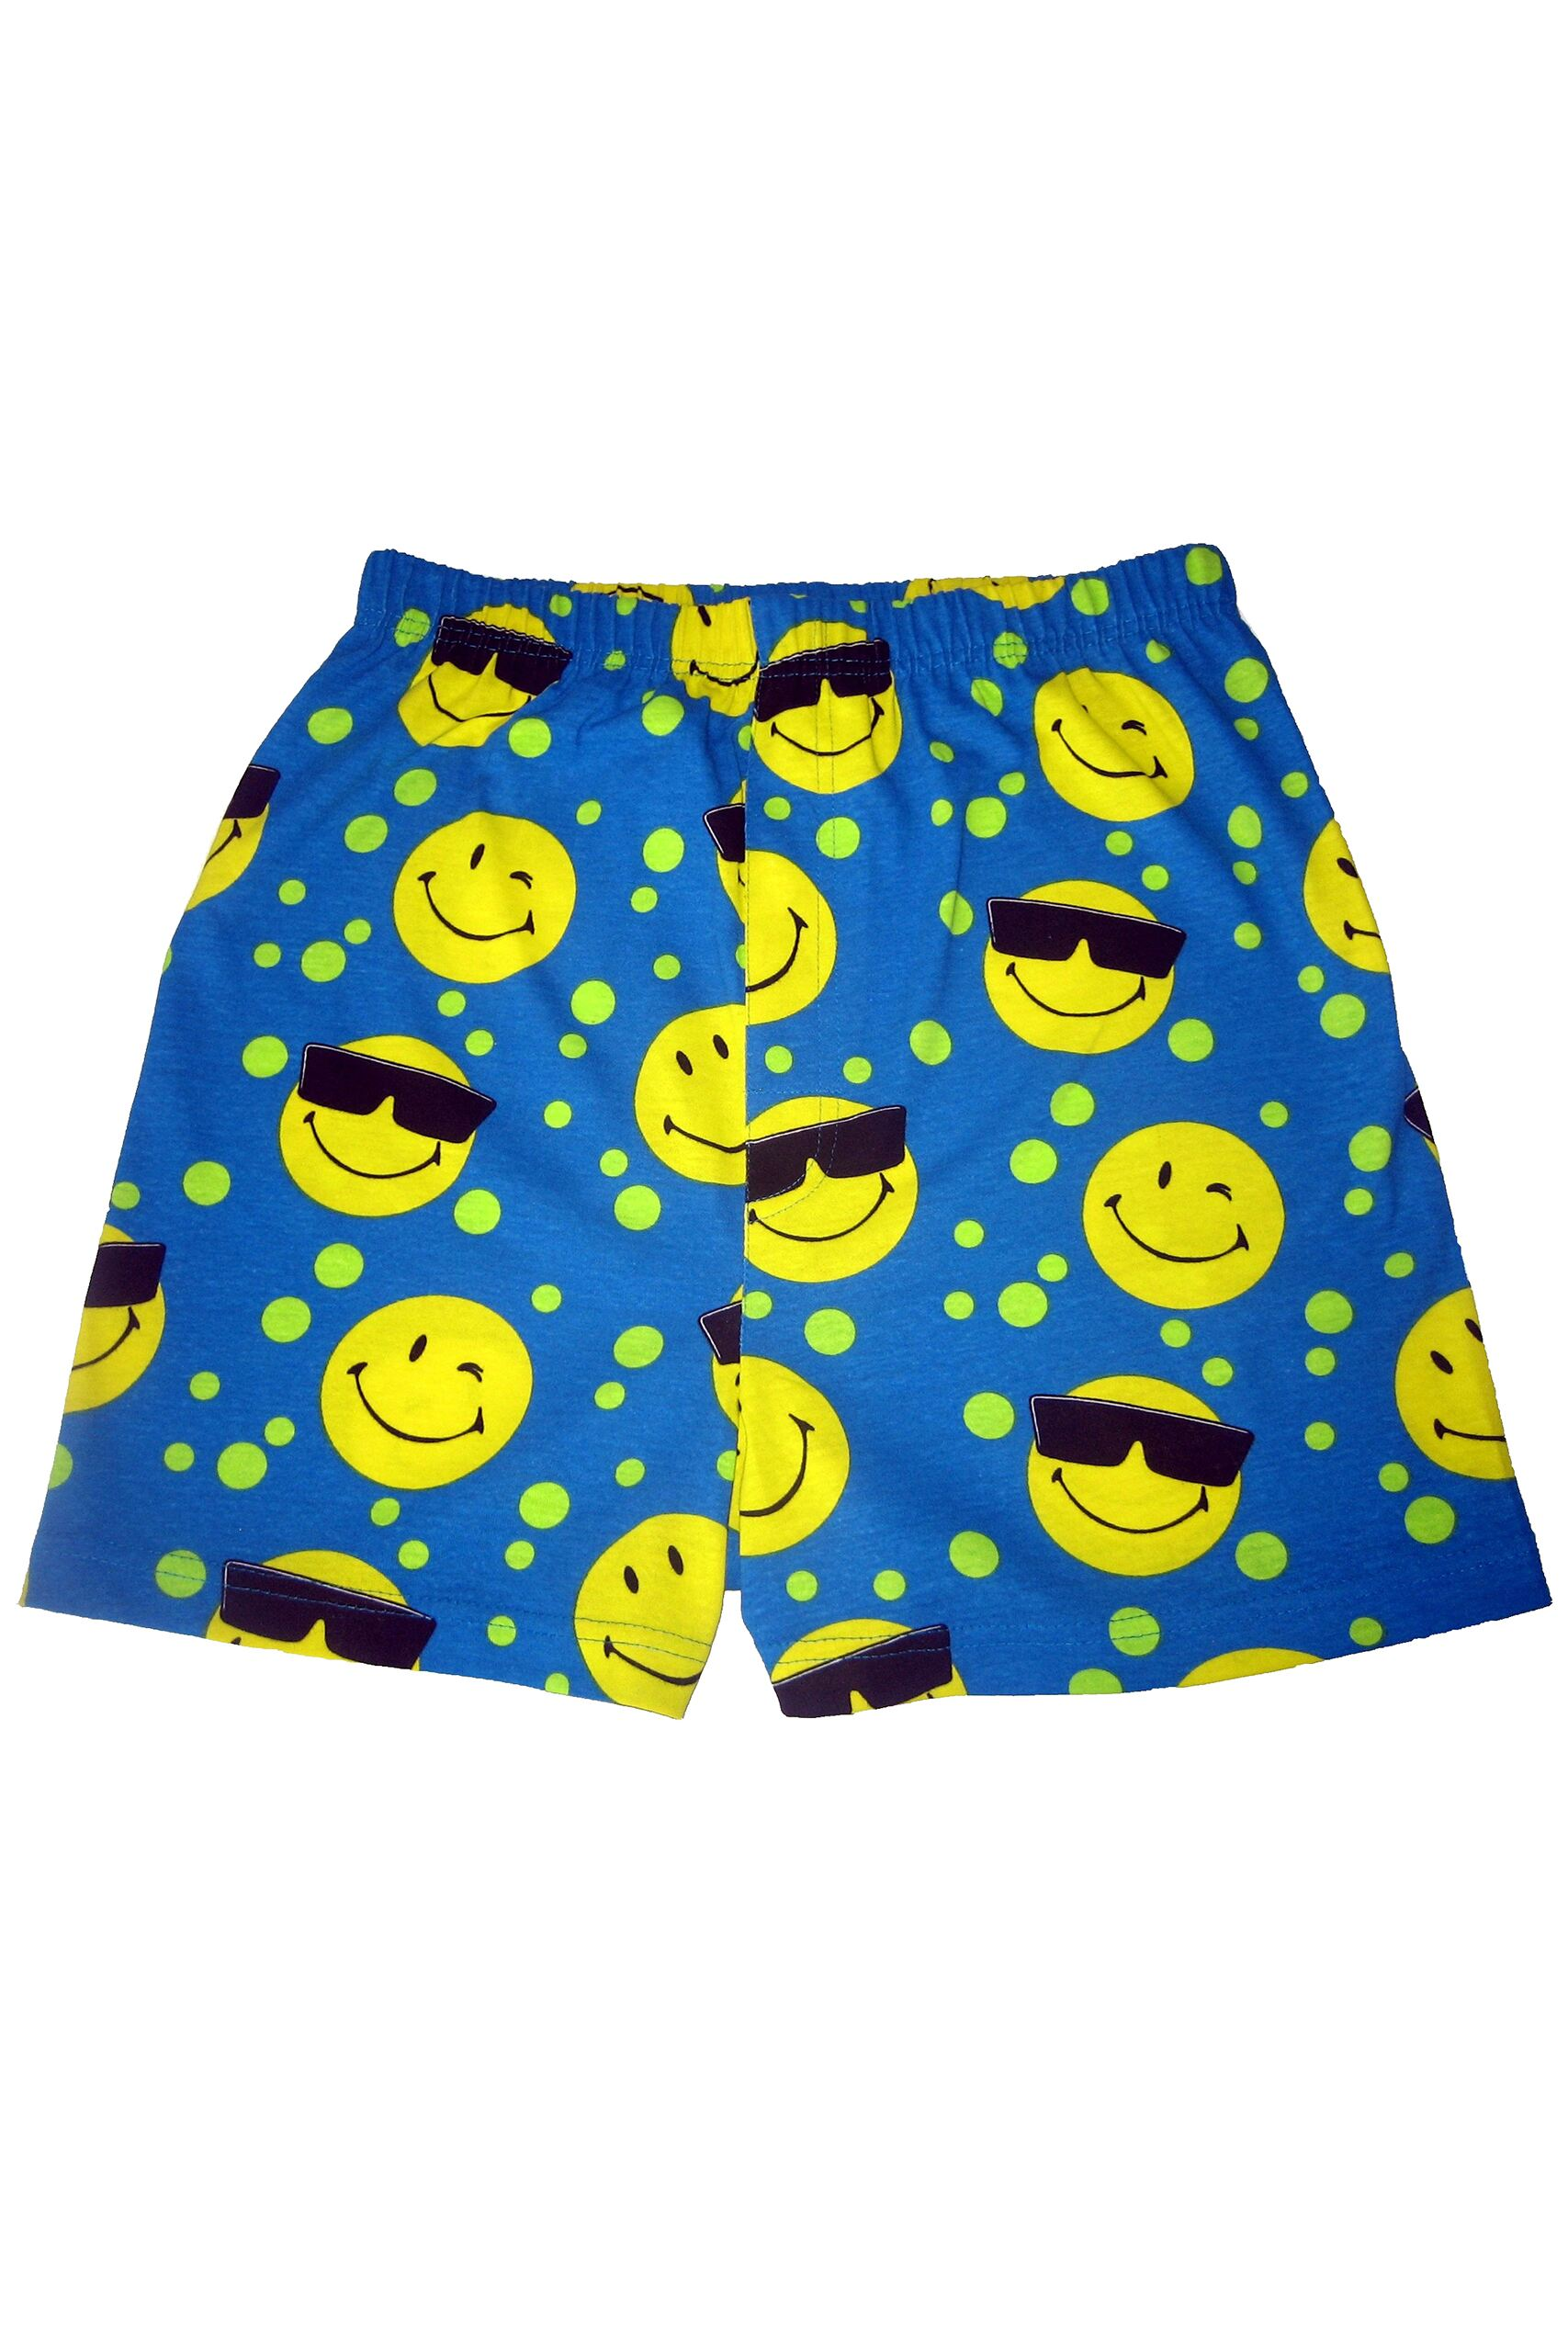 Image of 1 Pack Blue Magic Boxer Shorts In Smiley Pattern Men's Small - SOCKSHOP